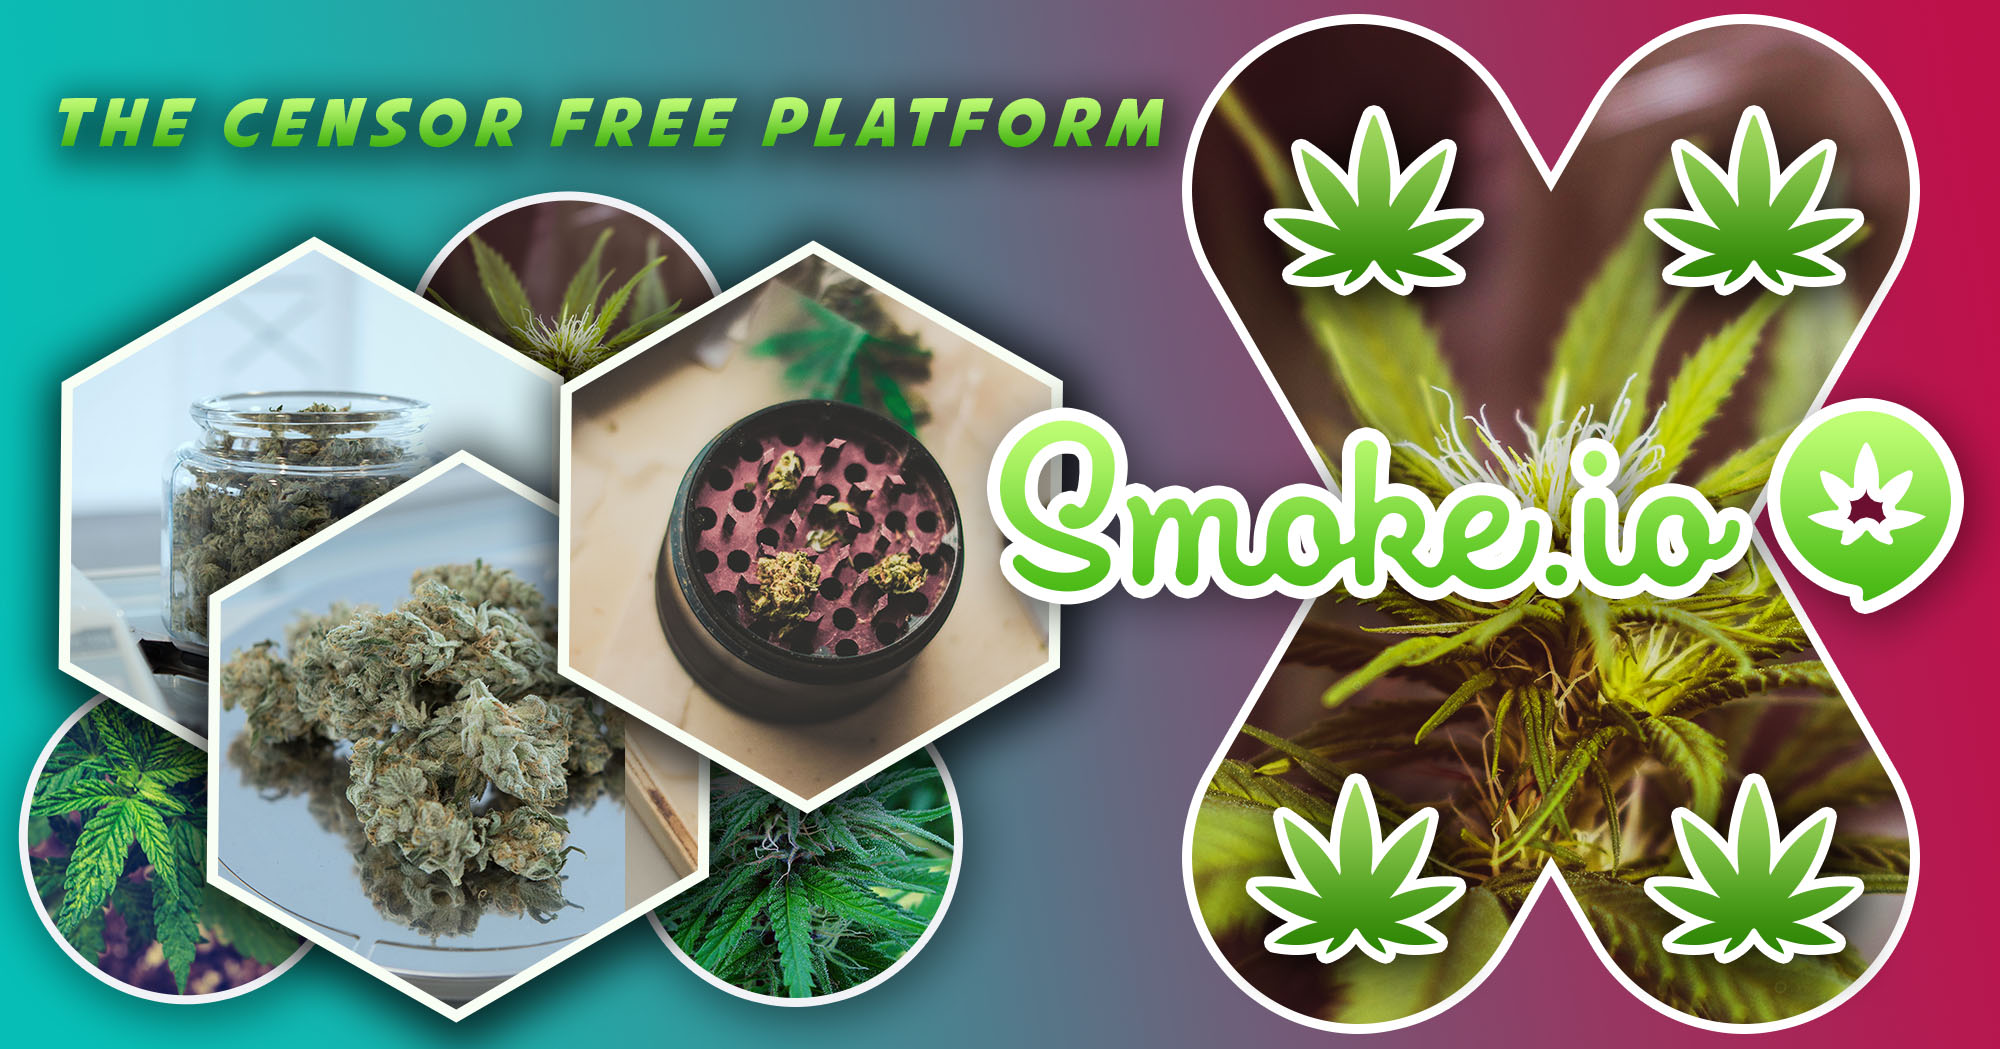 Designs For Smoke Promotion #123 - Digital Artboards